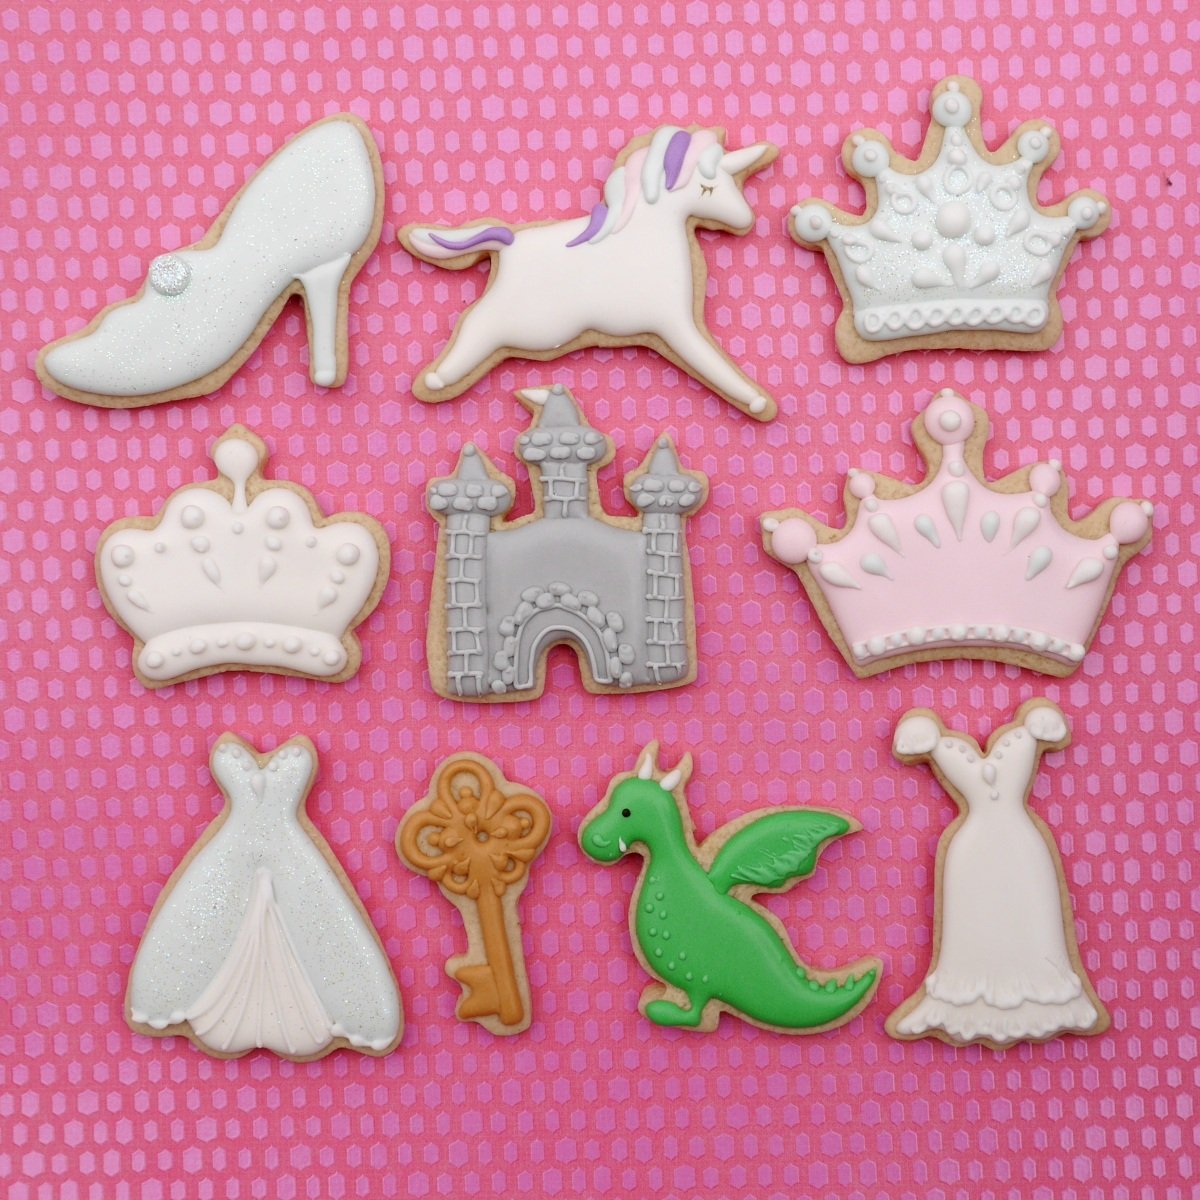 Princess Kingdom Cookie Cutter Set - 10 Piece Stainless Steel by Sweet Cookie Crumbs (Image #2)